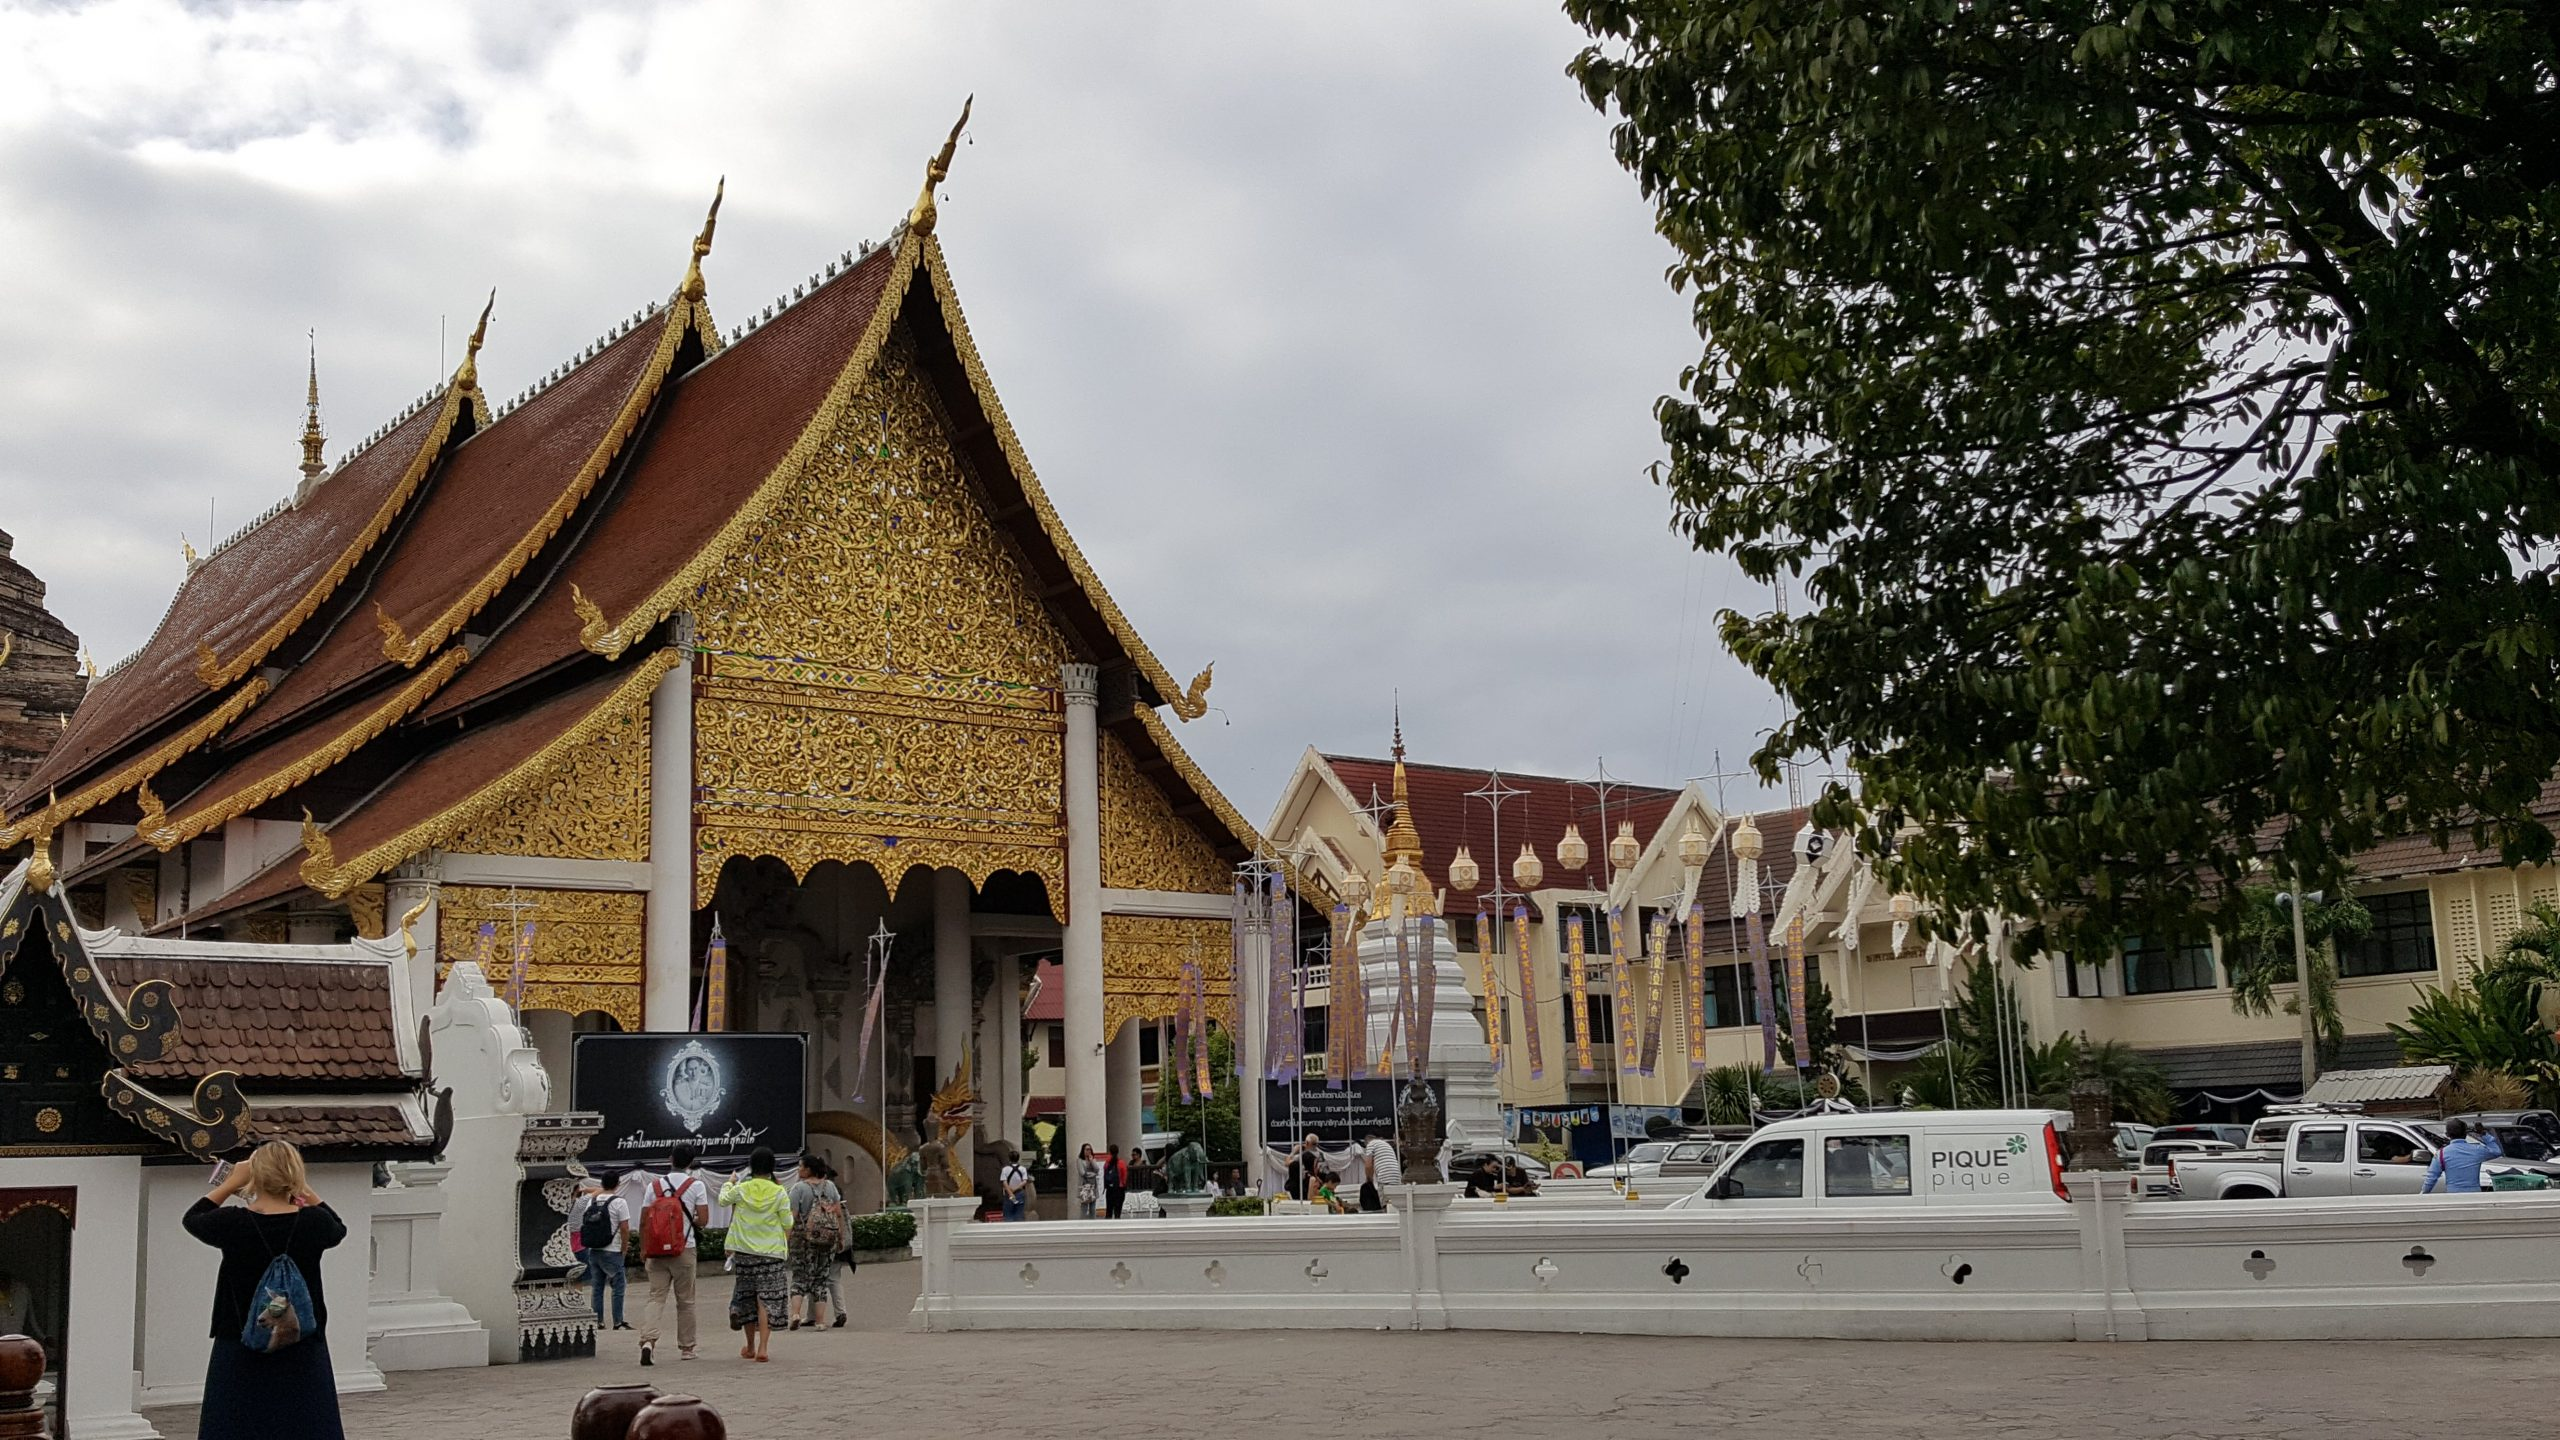 The Creative Professional's Guide to Chiang Mai